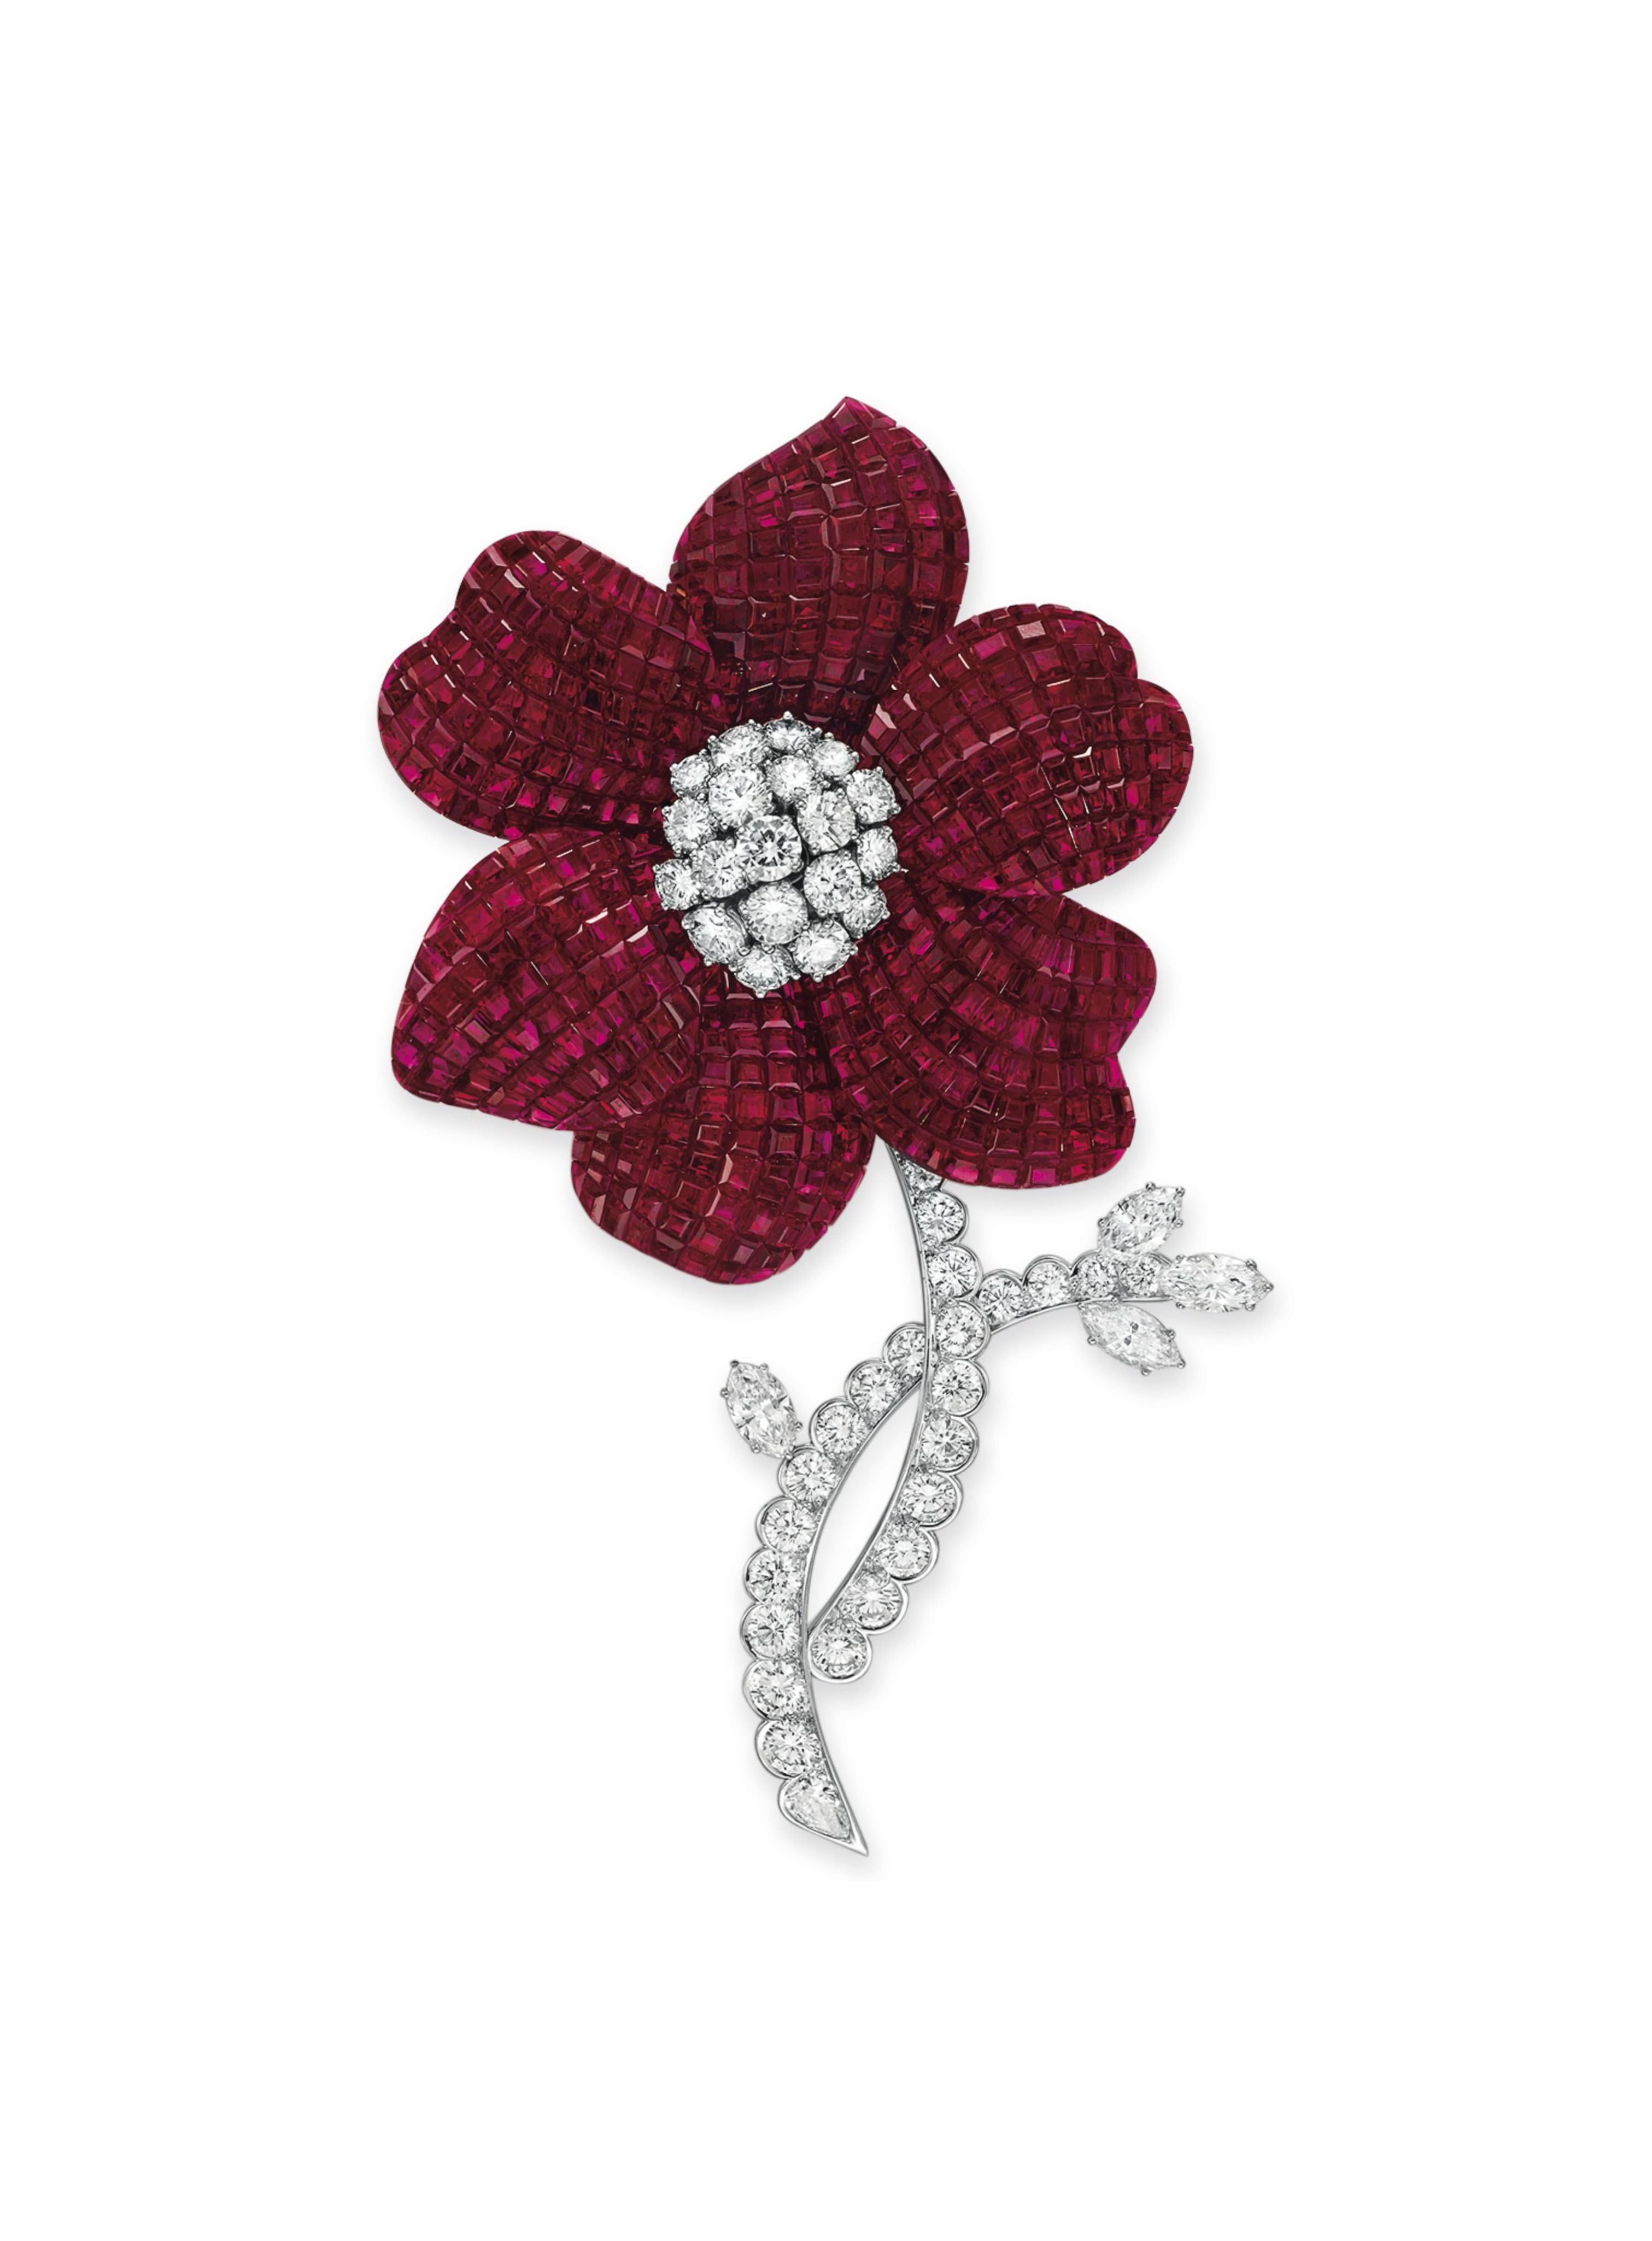 A RUBY AND DIAMOND FLOWER BROOCH, BY ALETTO BROTHERS